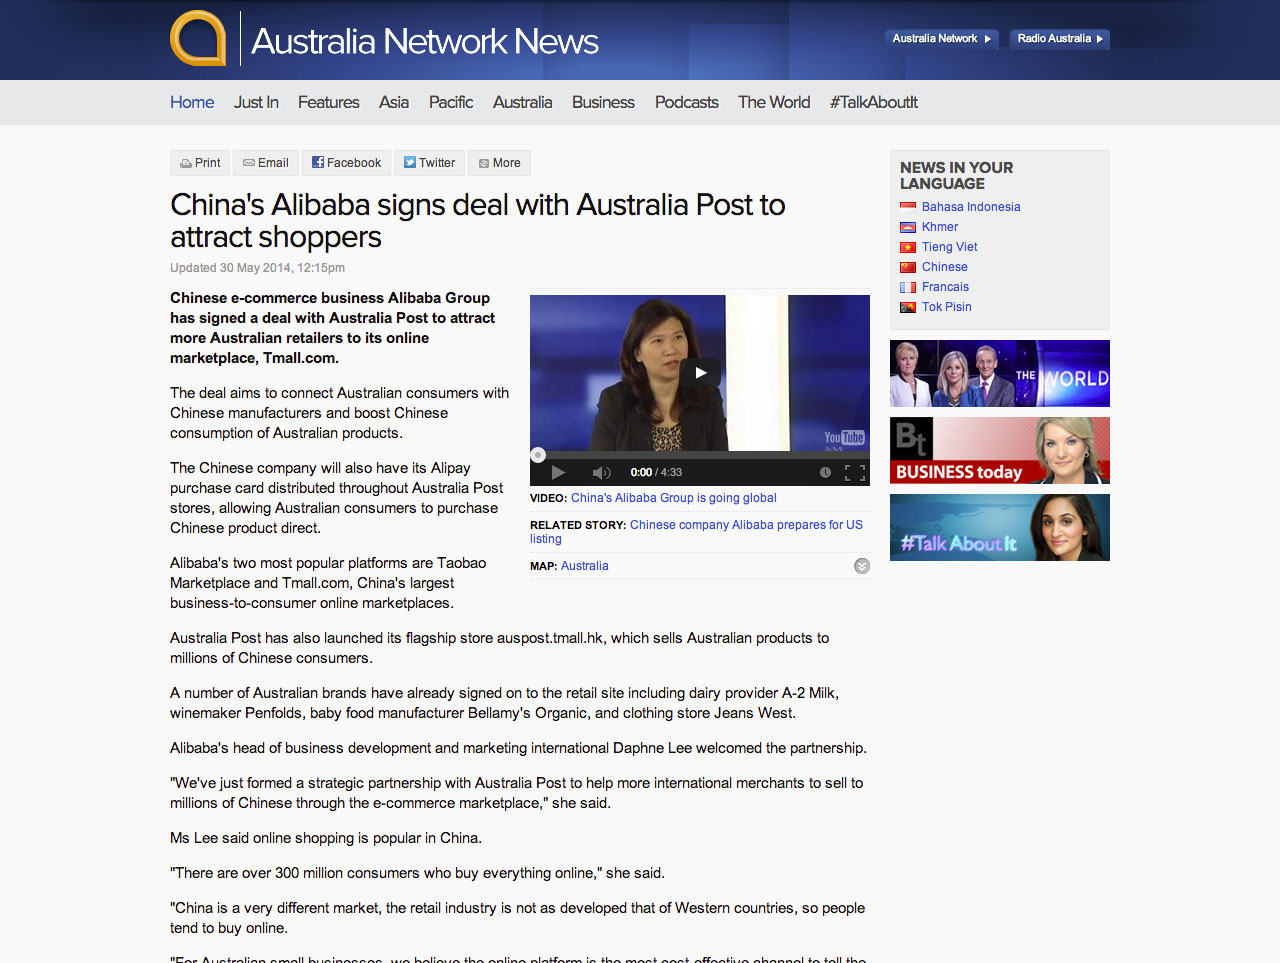 China's Alibaba signs deal with Australia Post to attract shoppers